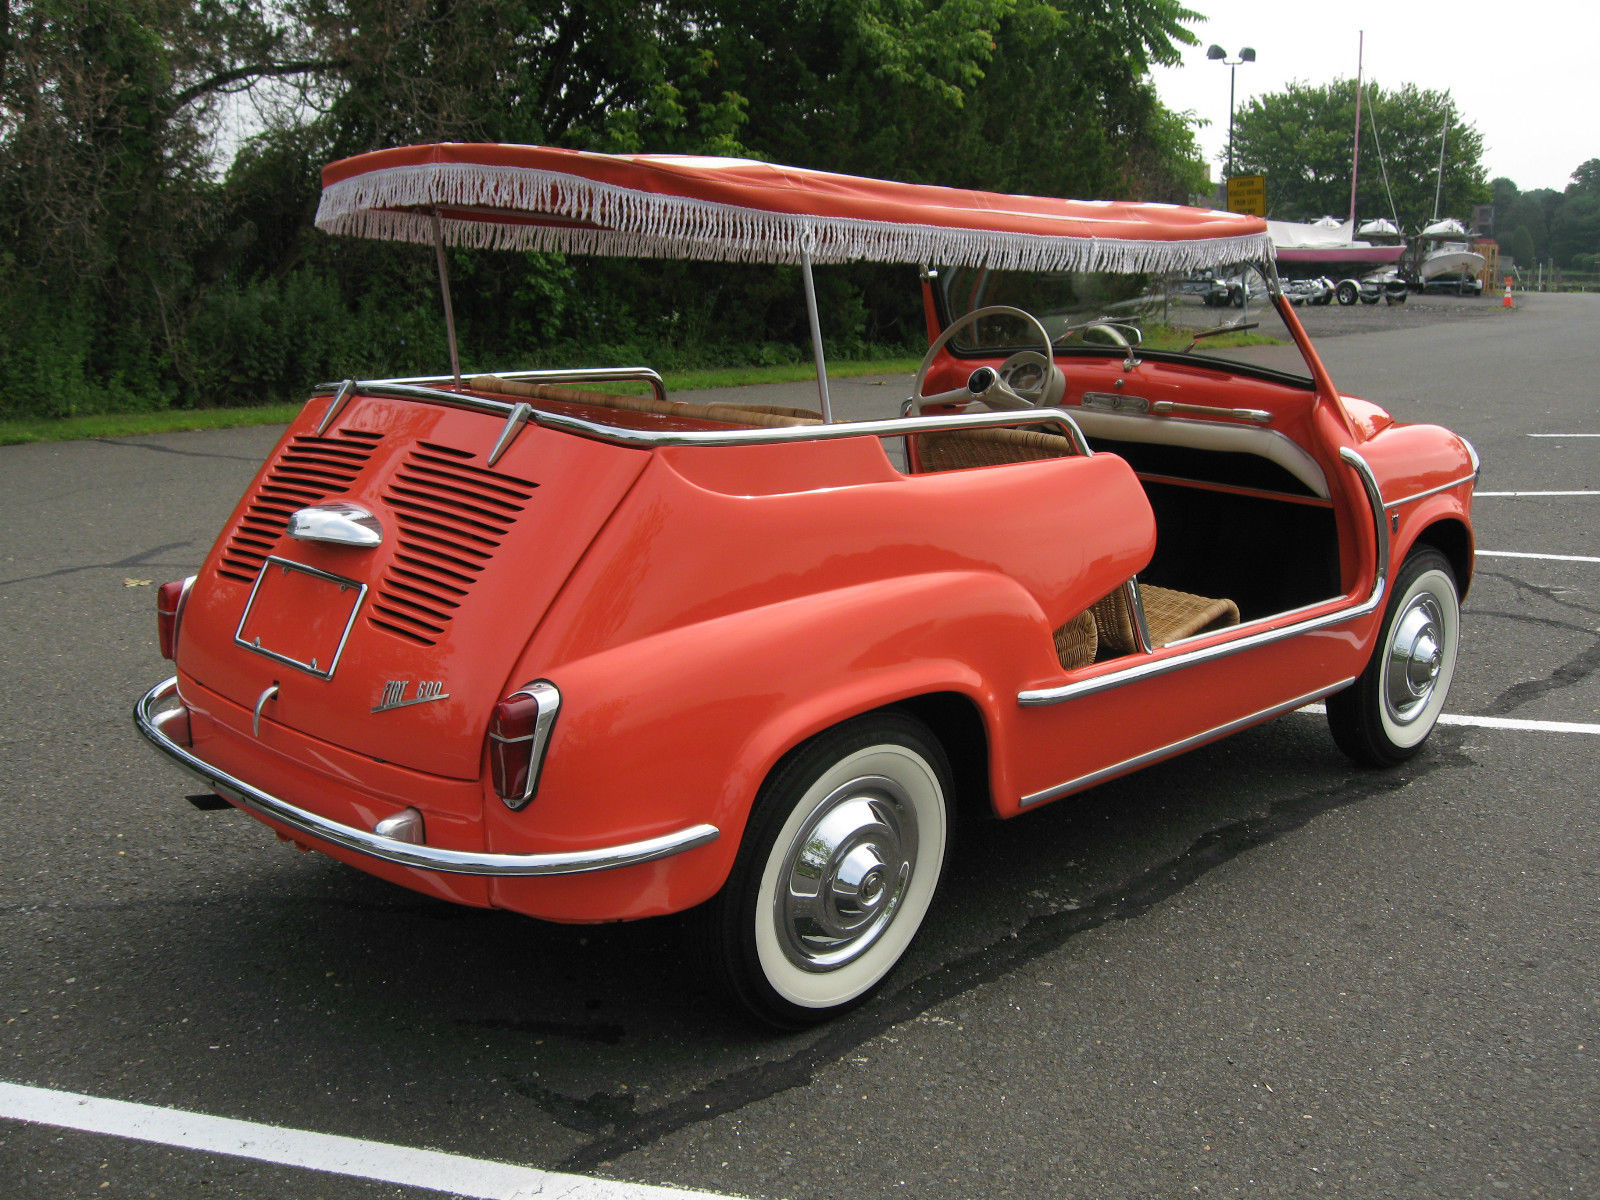 auto monterey auction express fiat for screen pictures beautiful shot at sale jolly cars